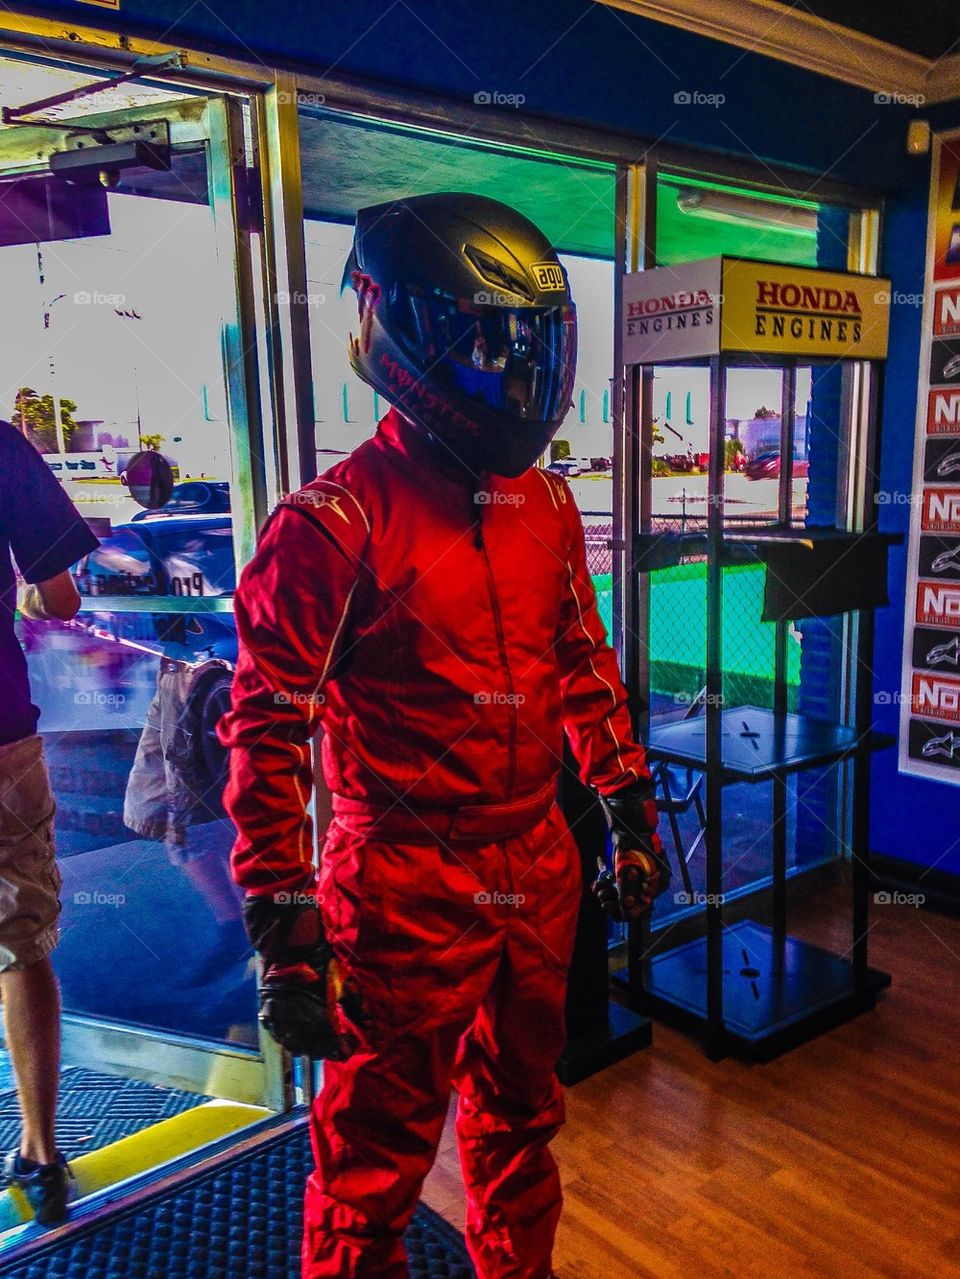 The red stig